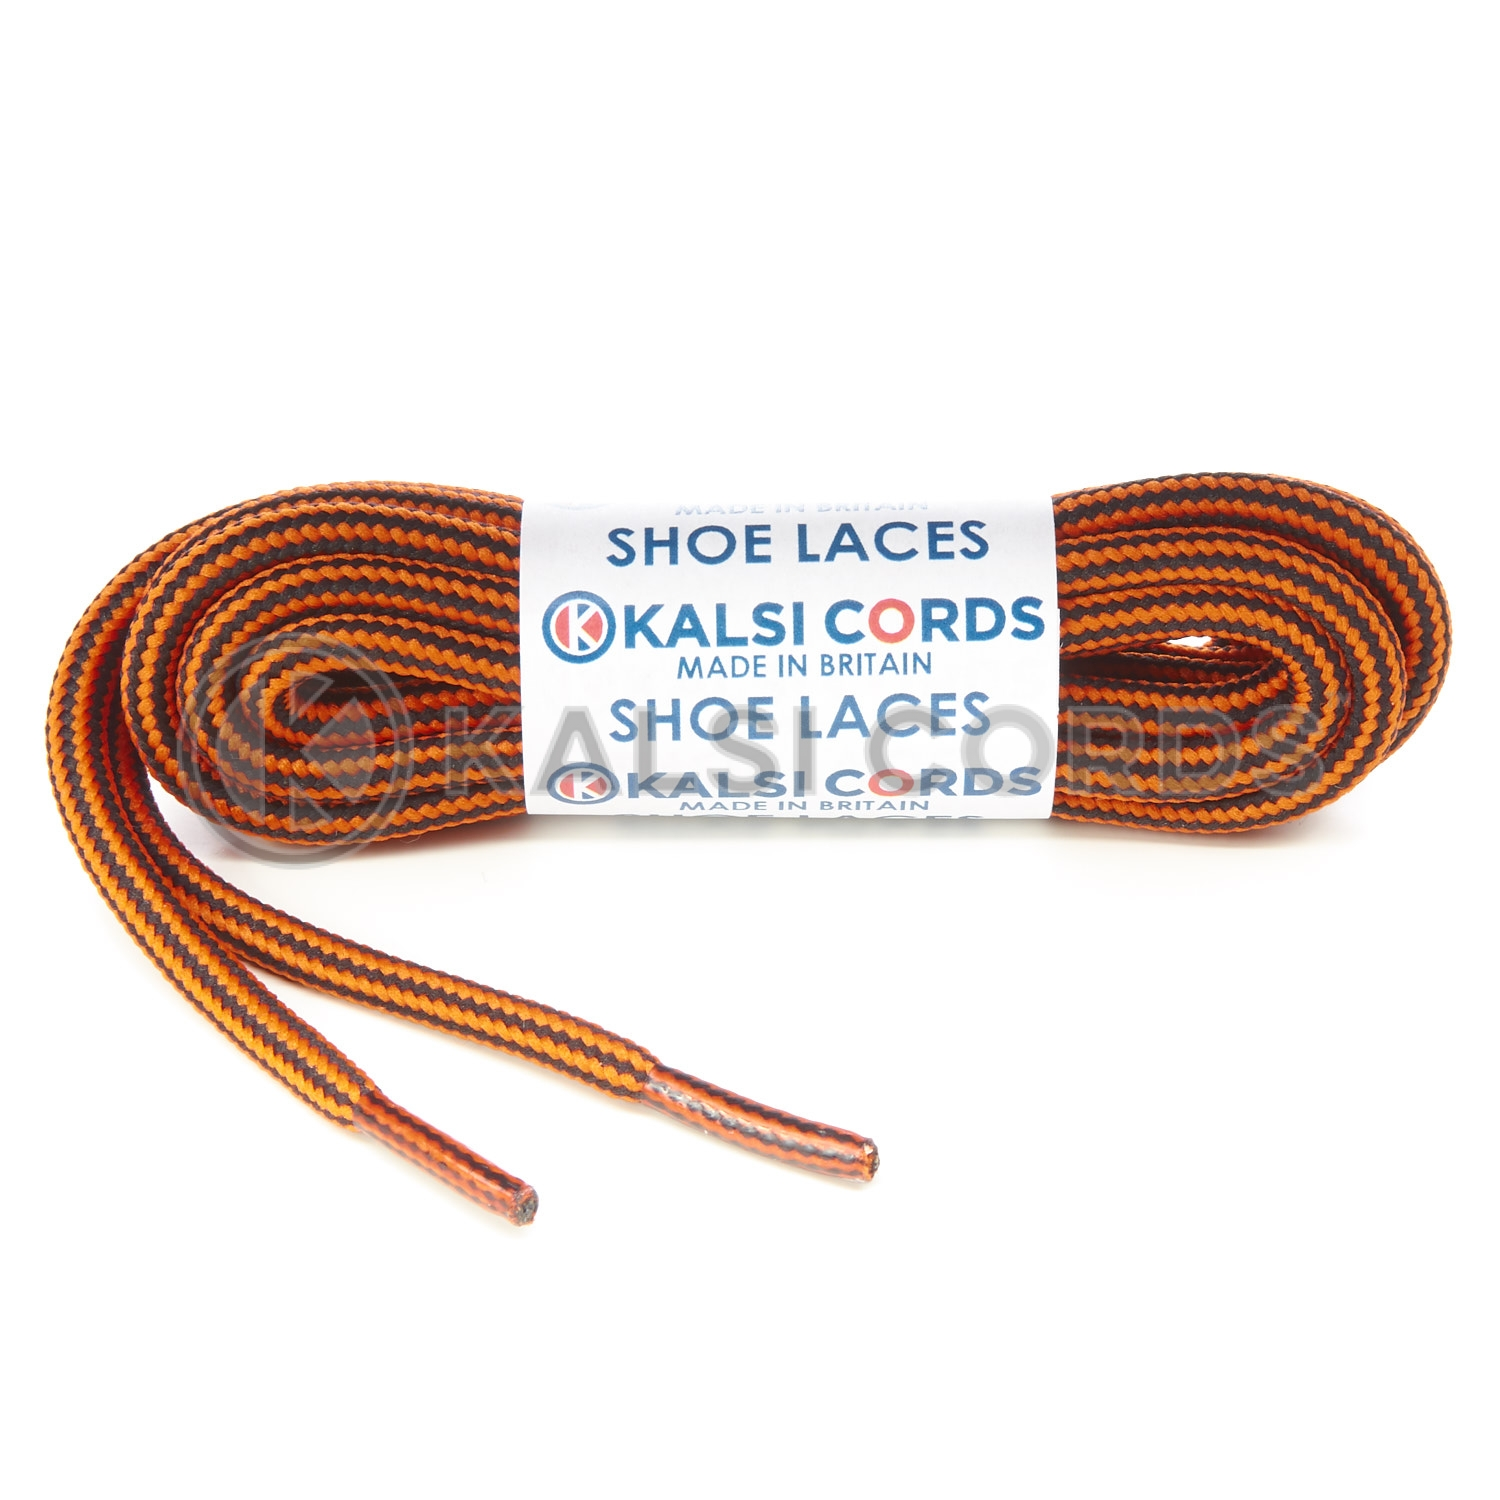 T621 5mm Round Cord Stripe Shoe Laces Orange Black Kids Trainers Adults Hiking Walking Boots Kalsi Cords